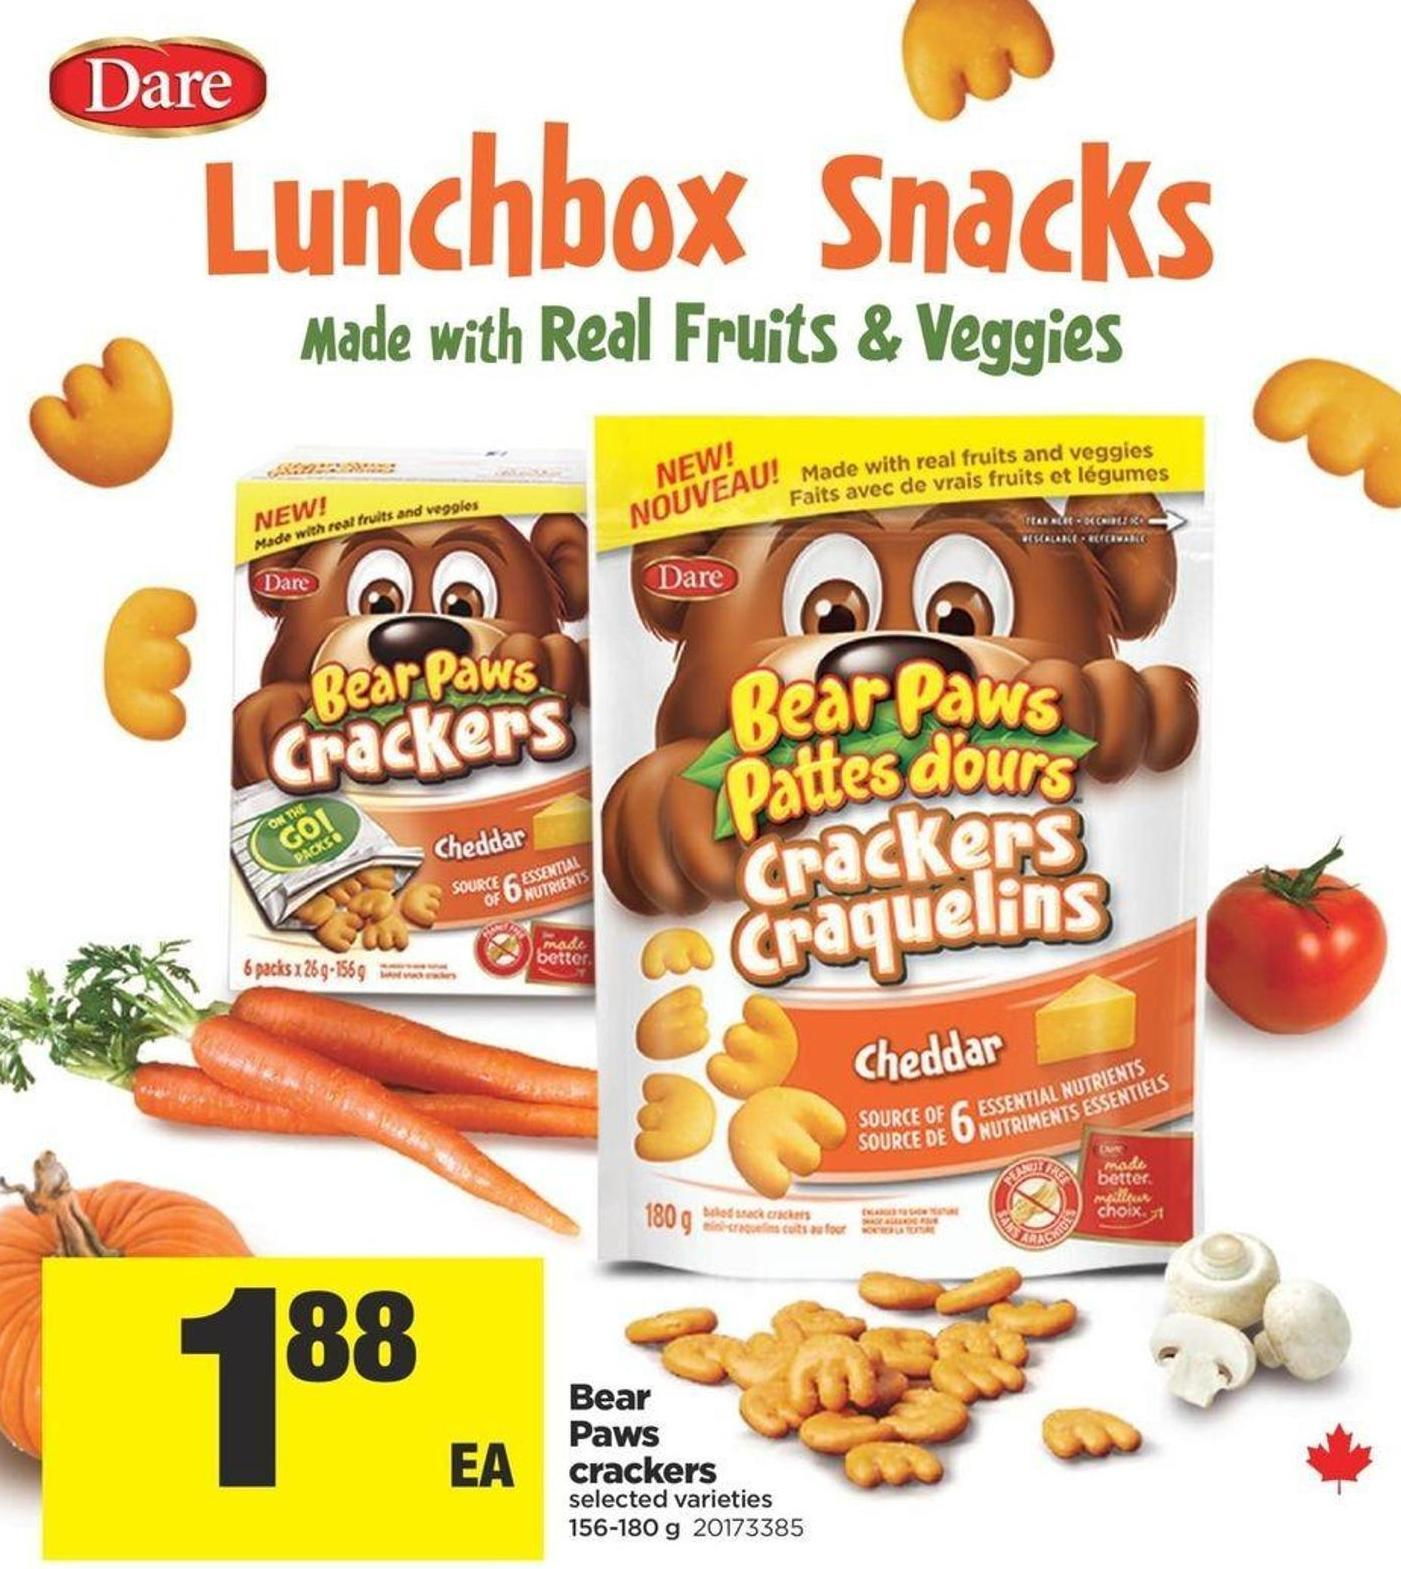 Bear Paws Crackers - 156-180 g